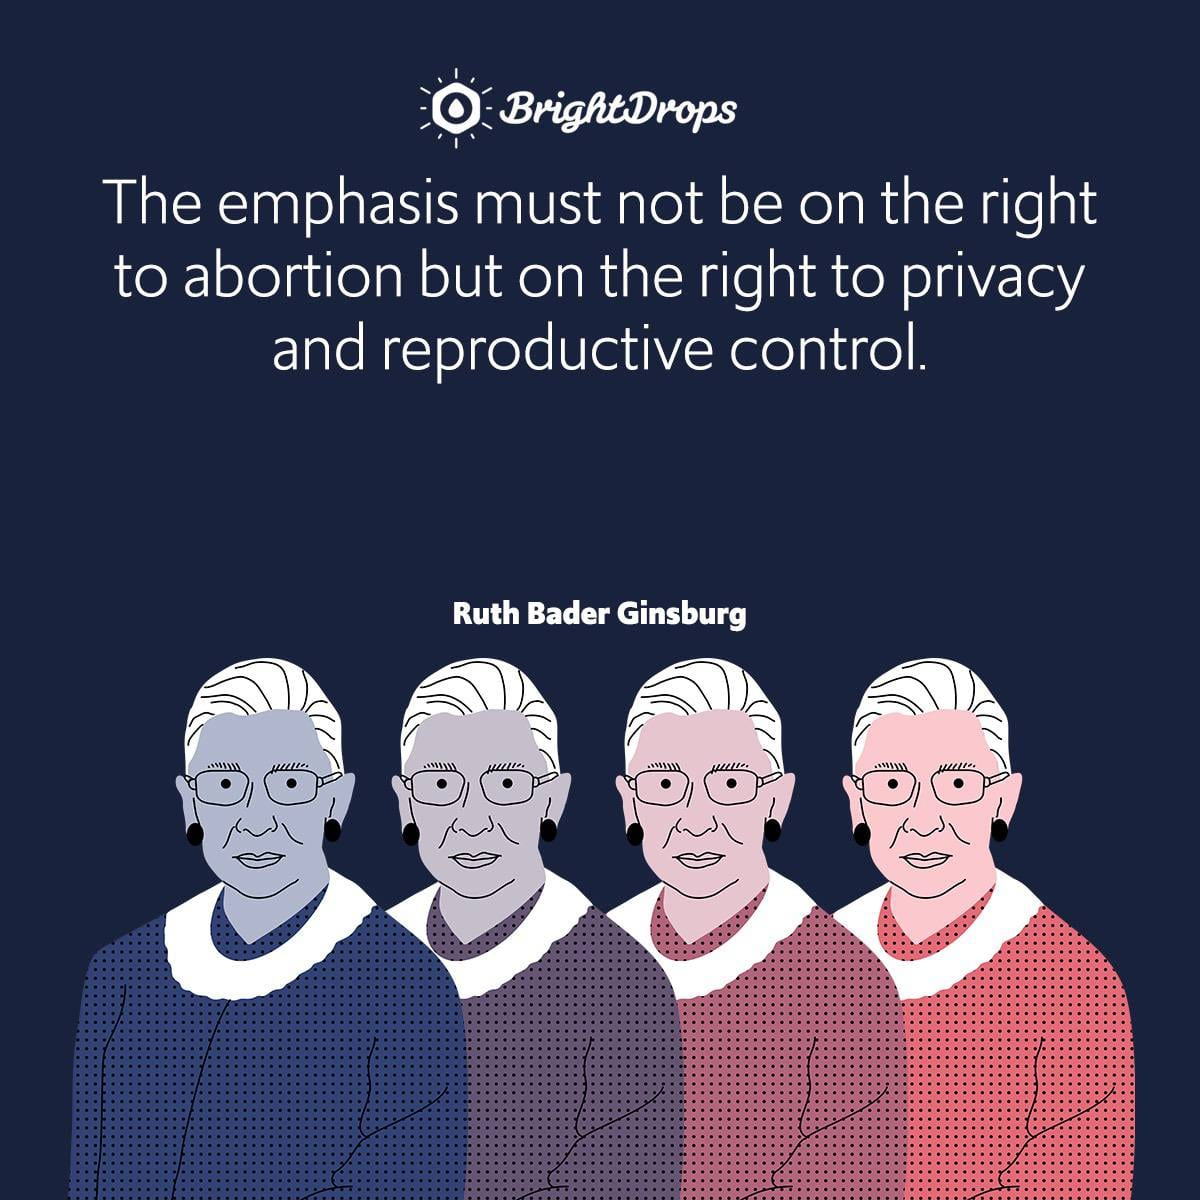 The emphasis must not be on the right to abortion but on the right to privacy and reproductive control.